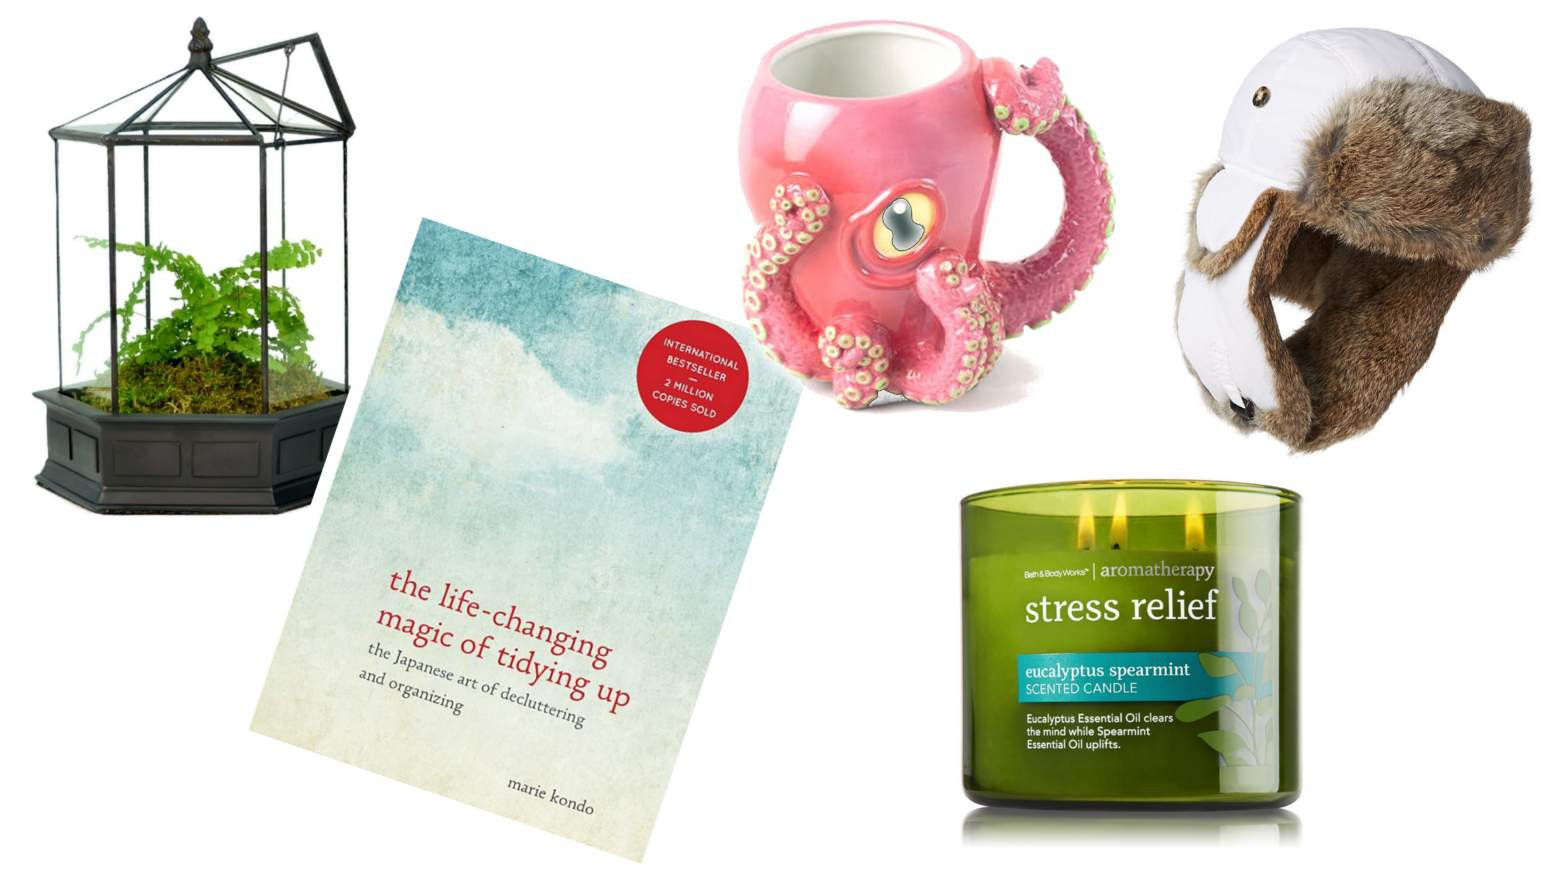 Gift Ideas For Girlfriend Christmas  Top 20 Best Gifts for Your Girlfriend